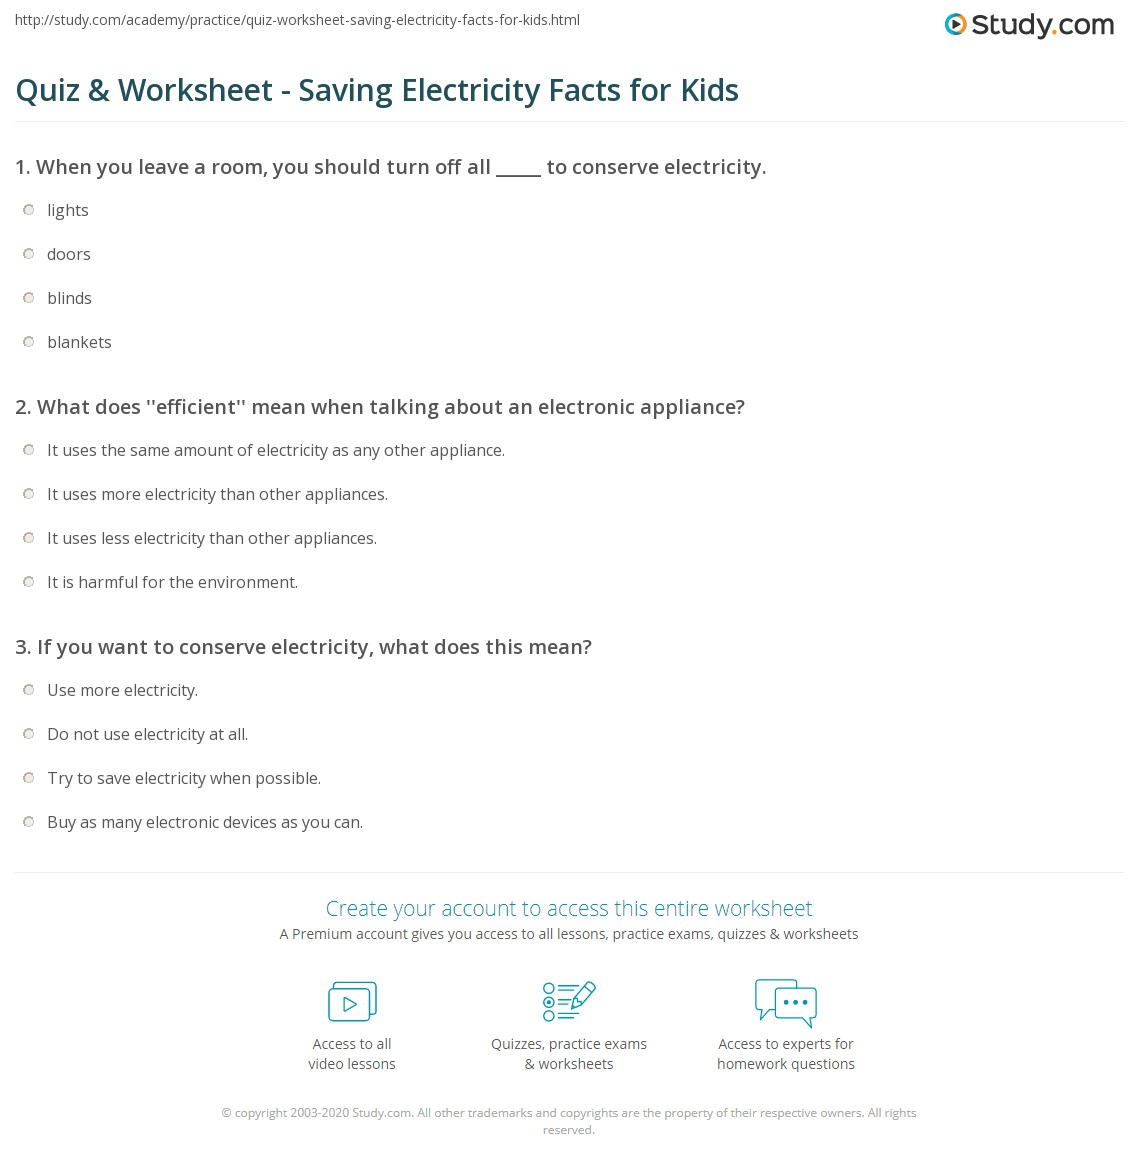 Conserve Electricity Quiz Worksheet Saving Electricity Facts For Kids Study